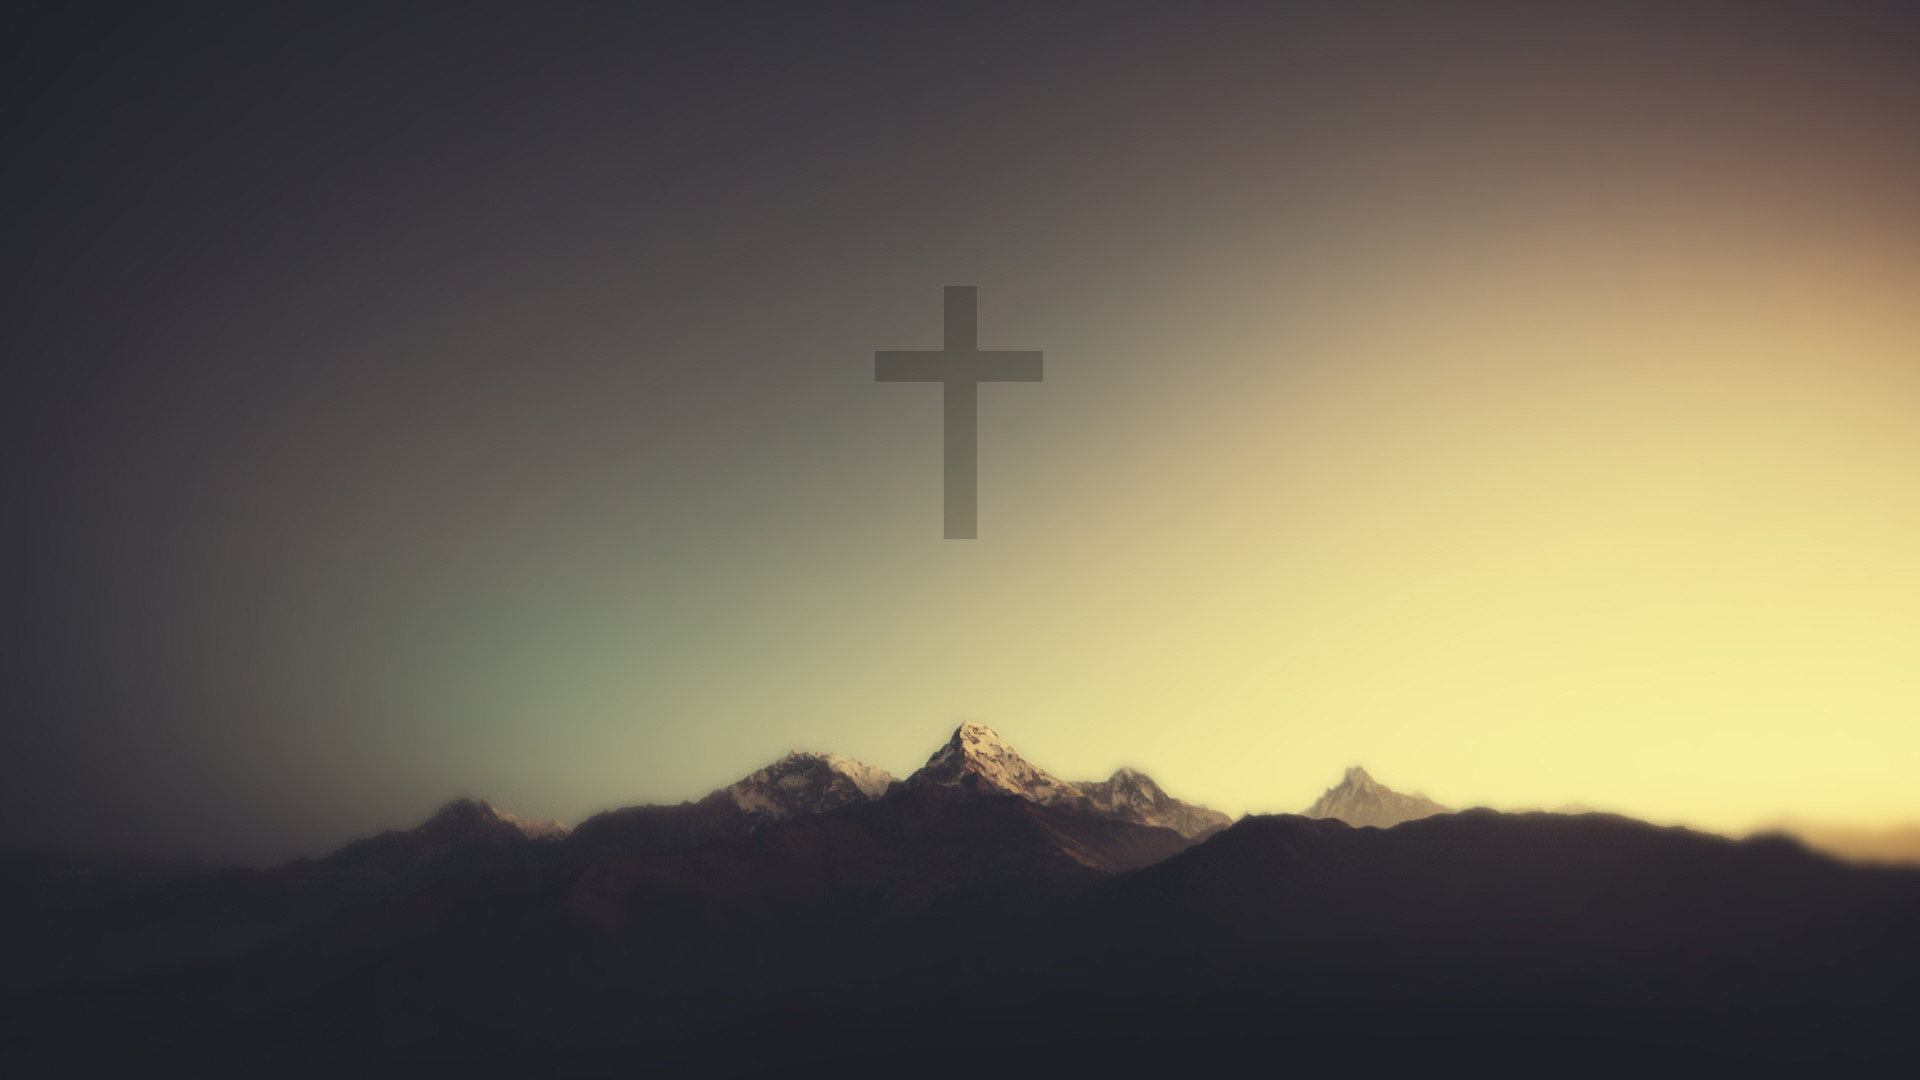 Religious Background Images 44 Pictures